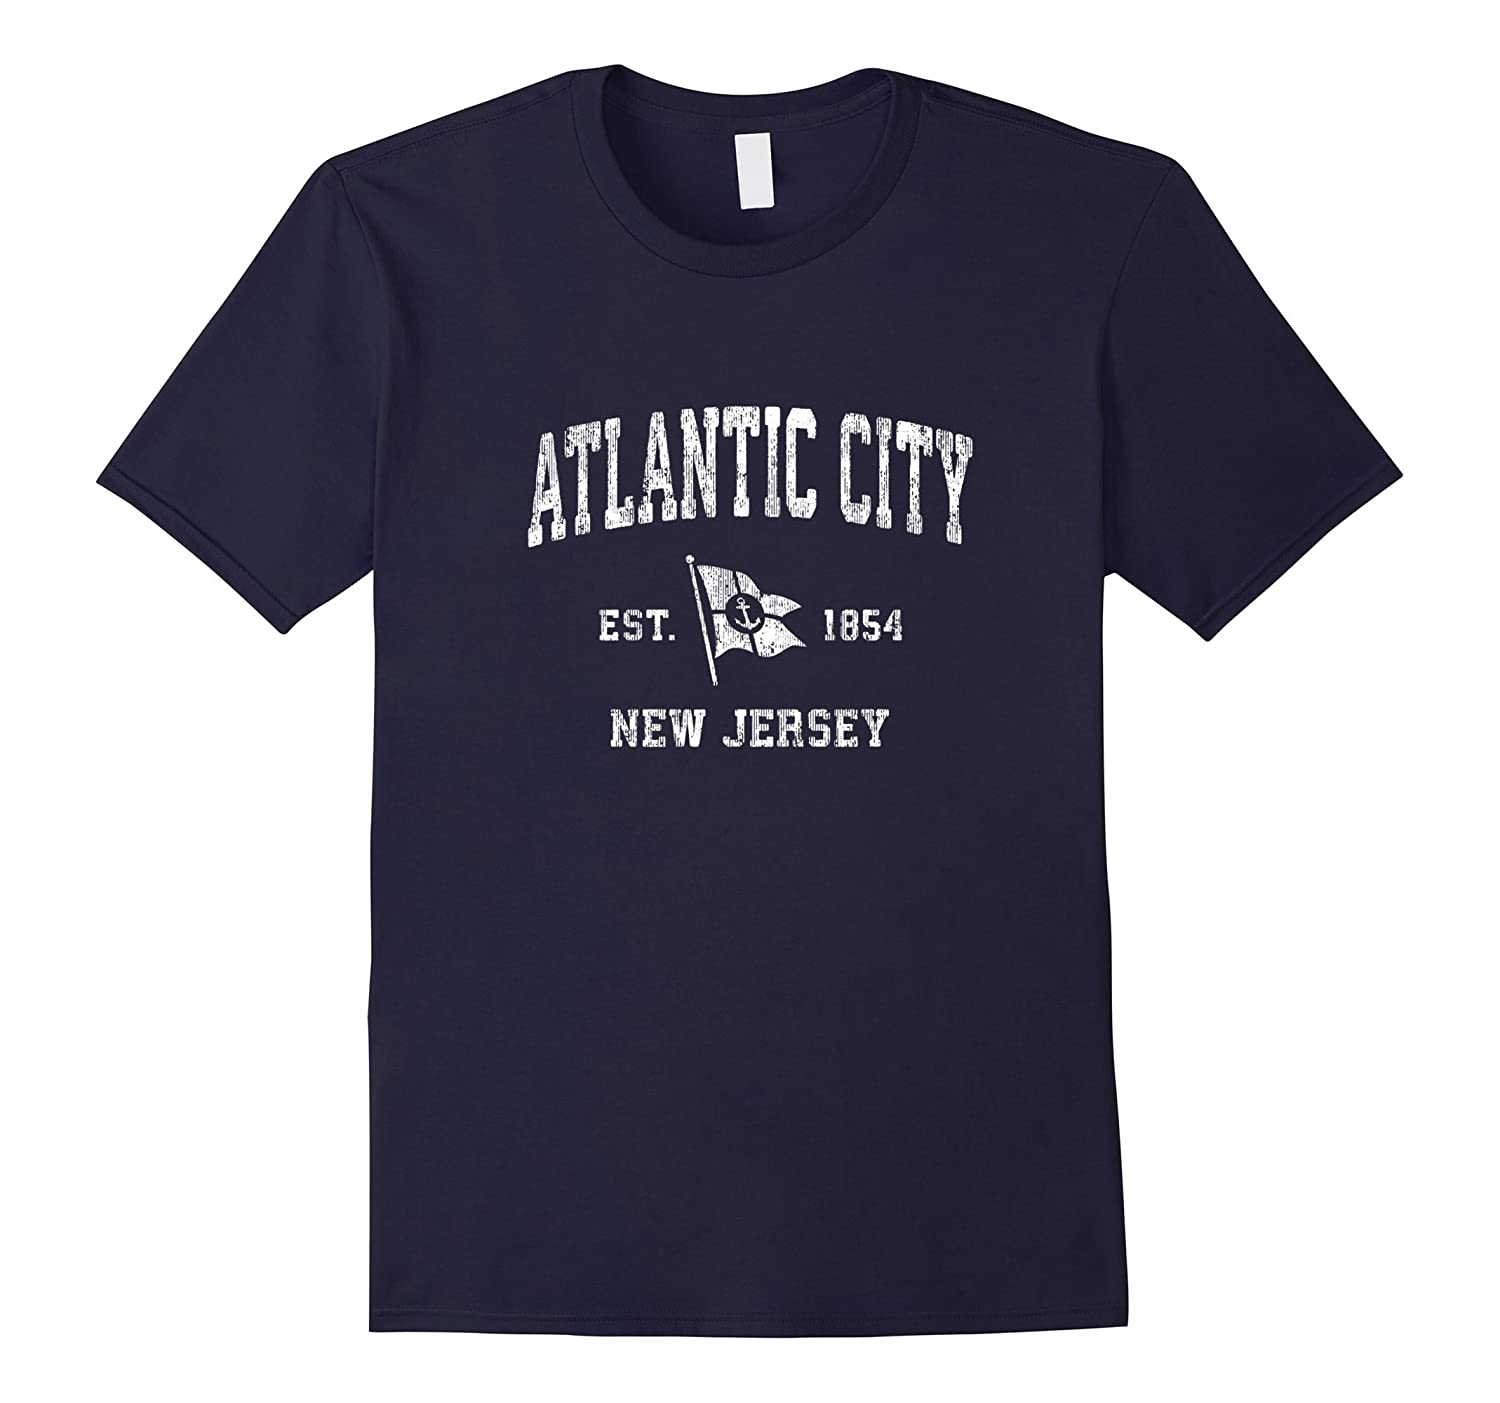 Atlantic City New Jersey NJ Vintage Boat Anchor Flag Tee-FL